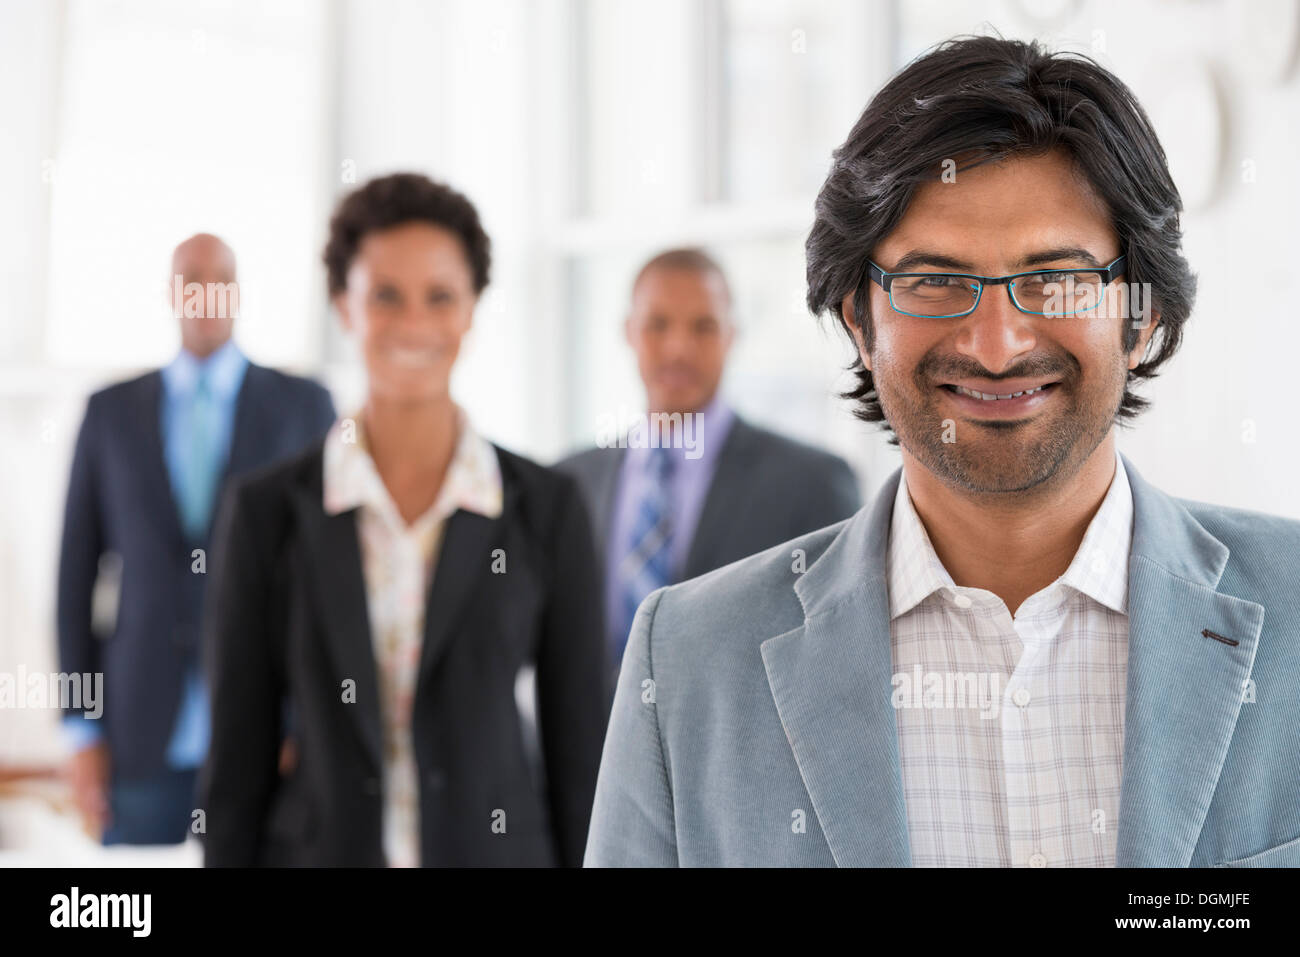 Business people. A team of people, a department or company. Three men and one woman. - Stock Image